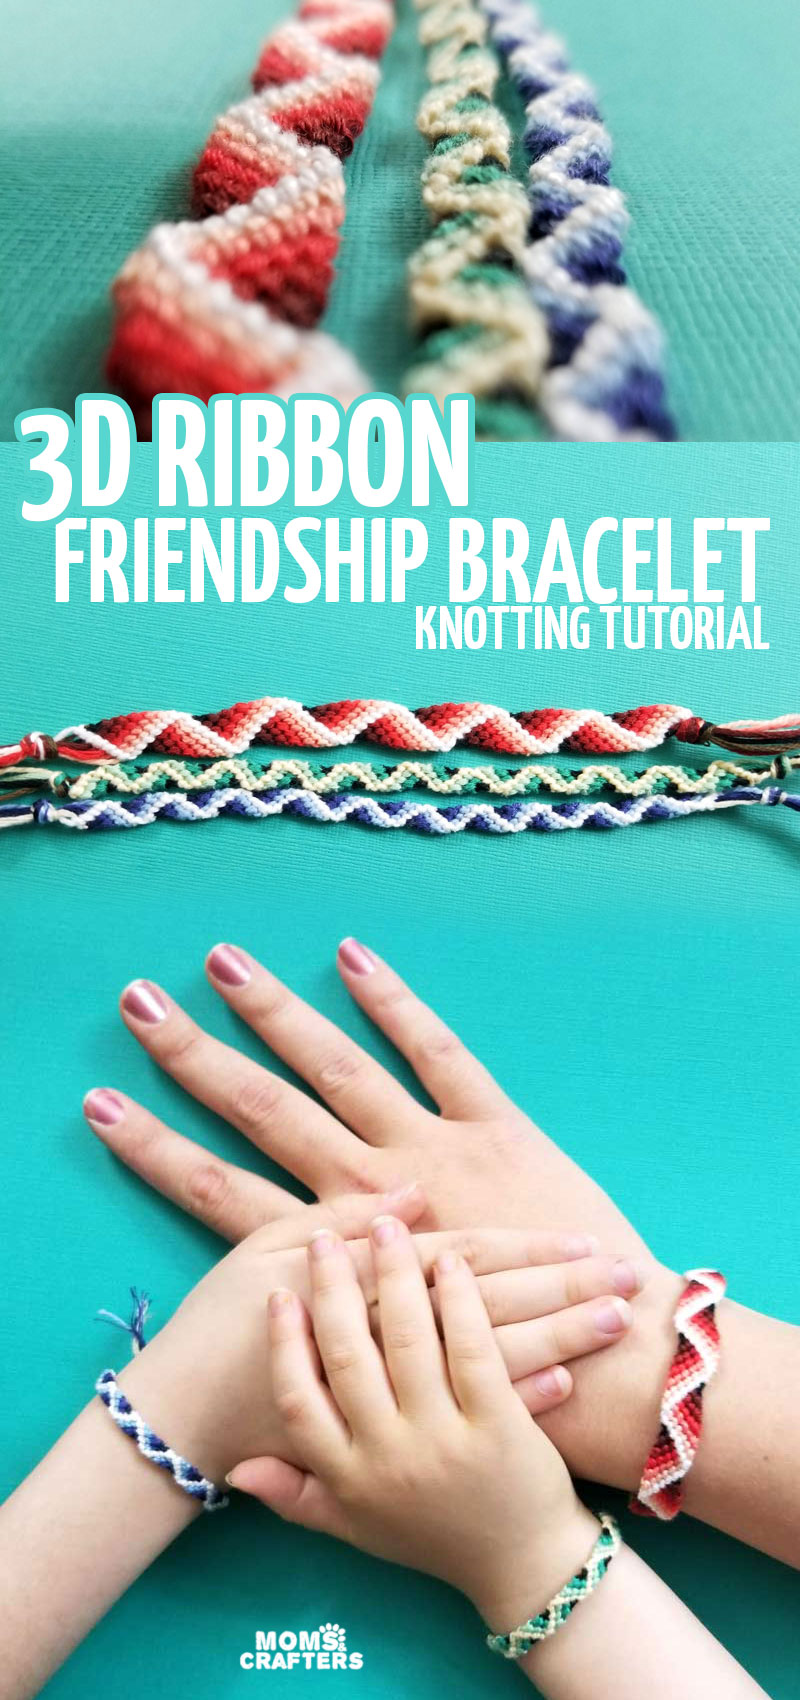 Click to learn how to mkae a 3D zig zag friendship bracelet from embroidery floss. This fun bracelet knotting tutorial is a fun jewelry making and summer crafts for teens and tweens.